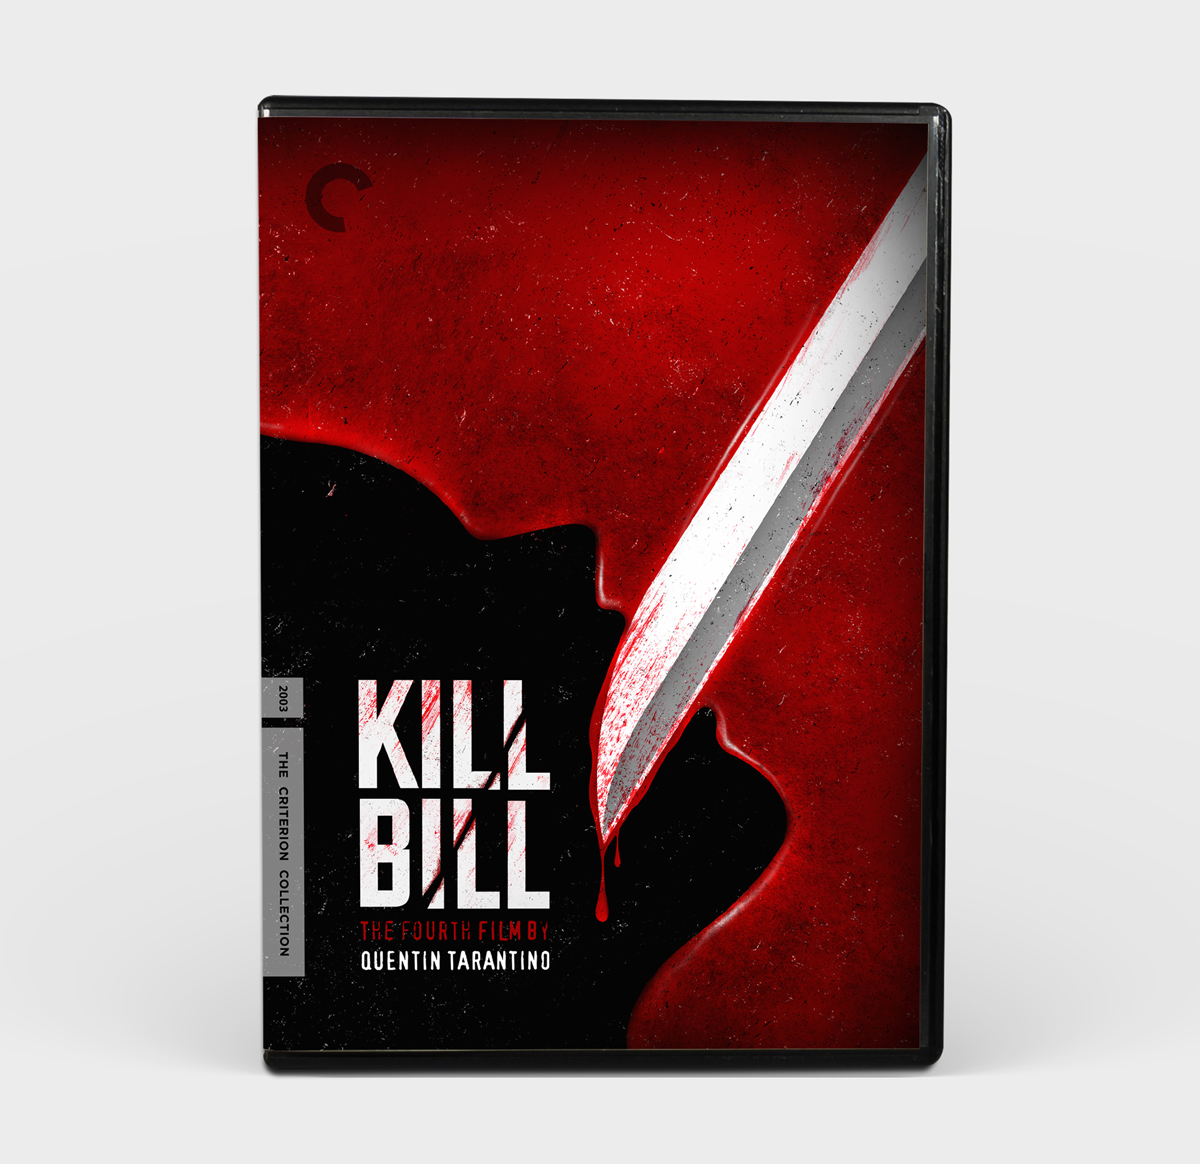 Criterion-Covers-kill-bill-front-Thanh-Nguyen-design